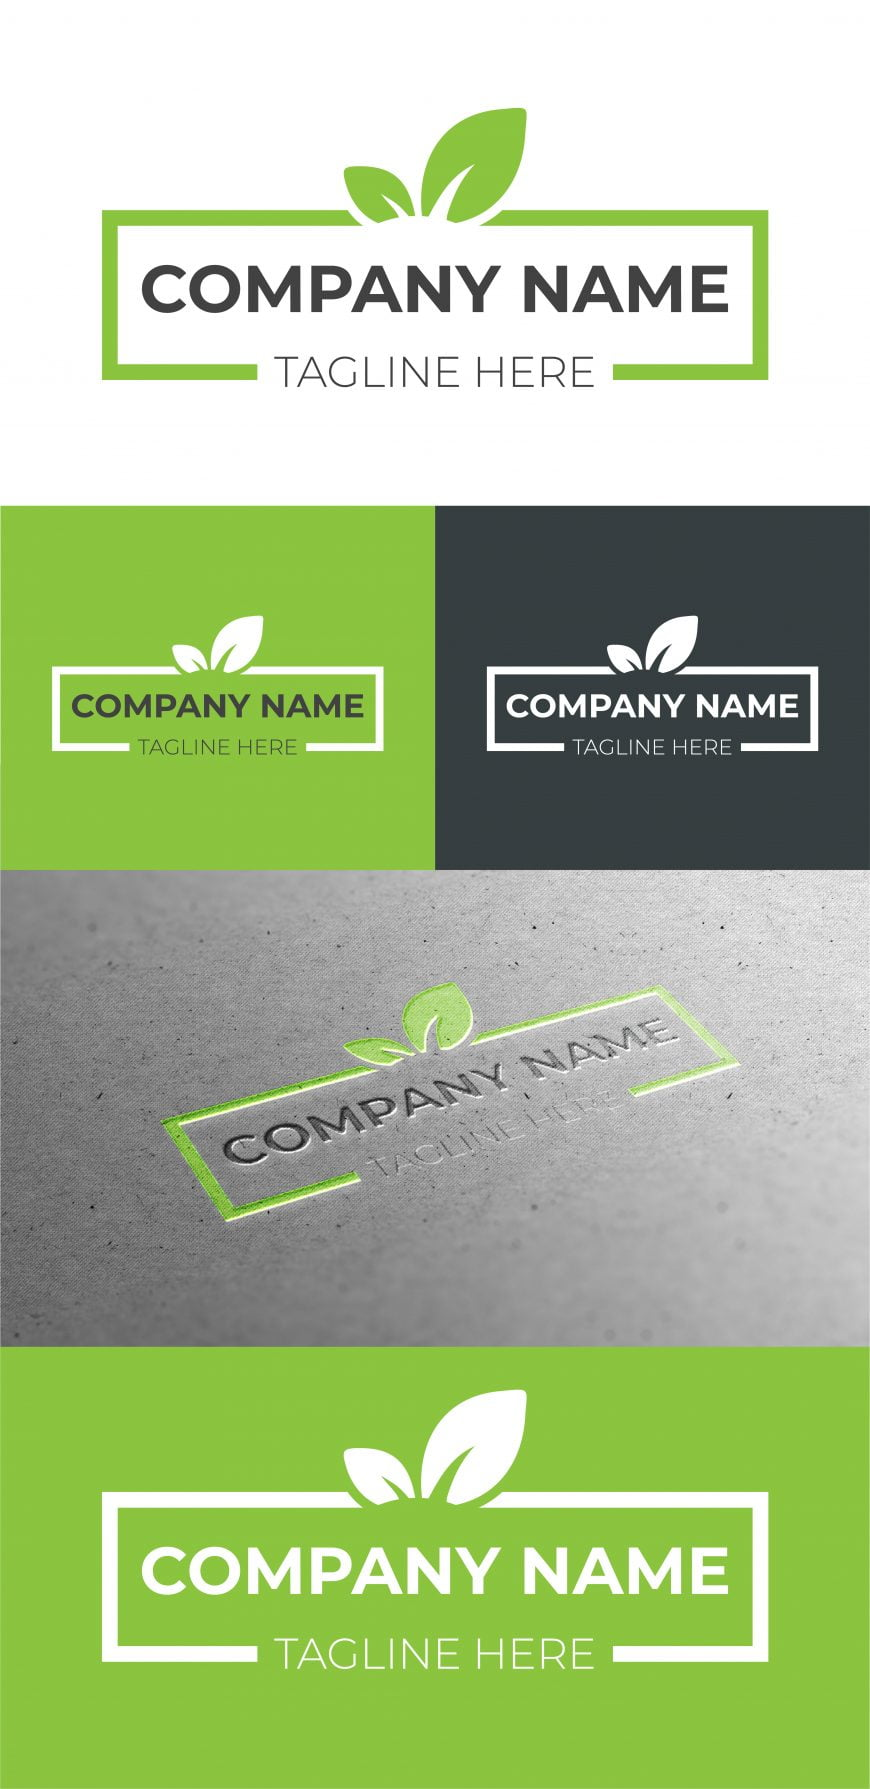 green-logo-design-template-scaled